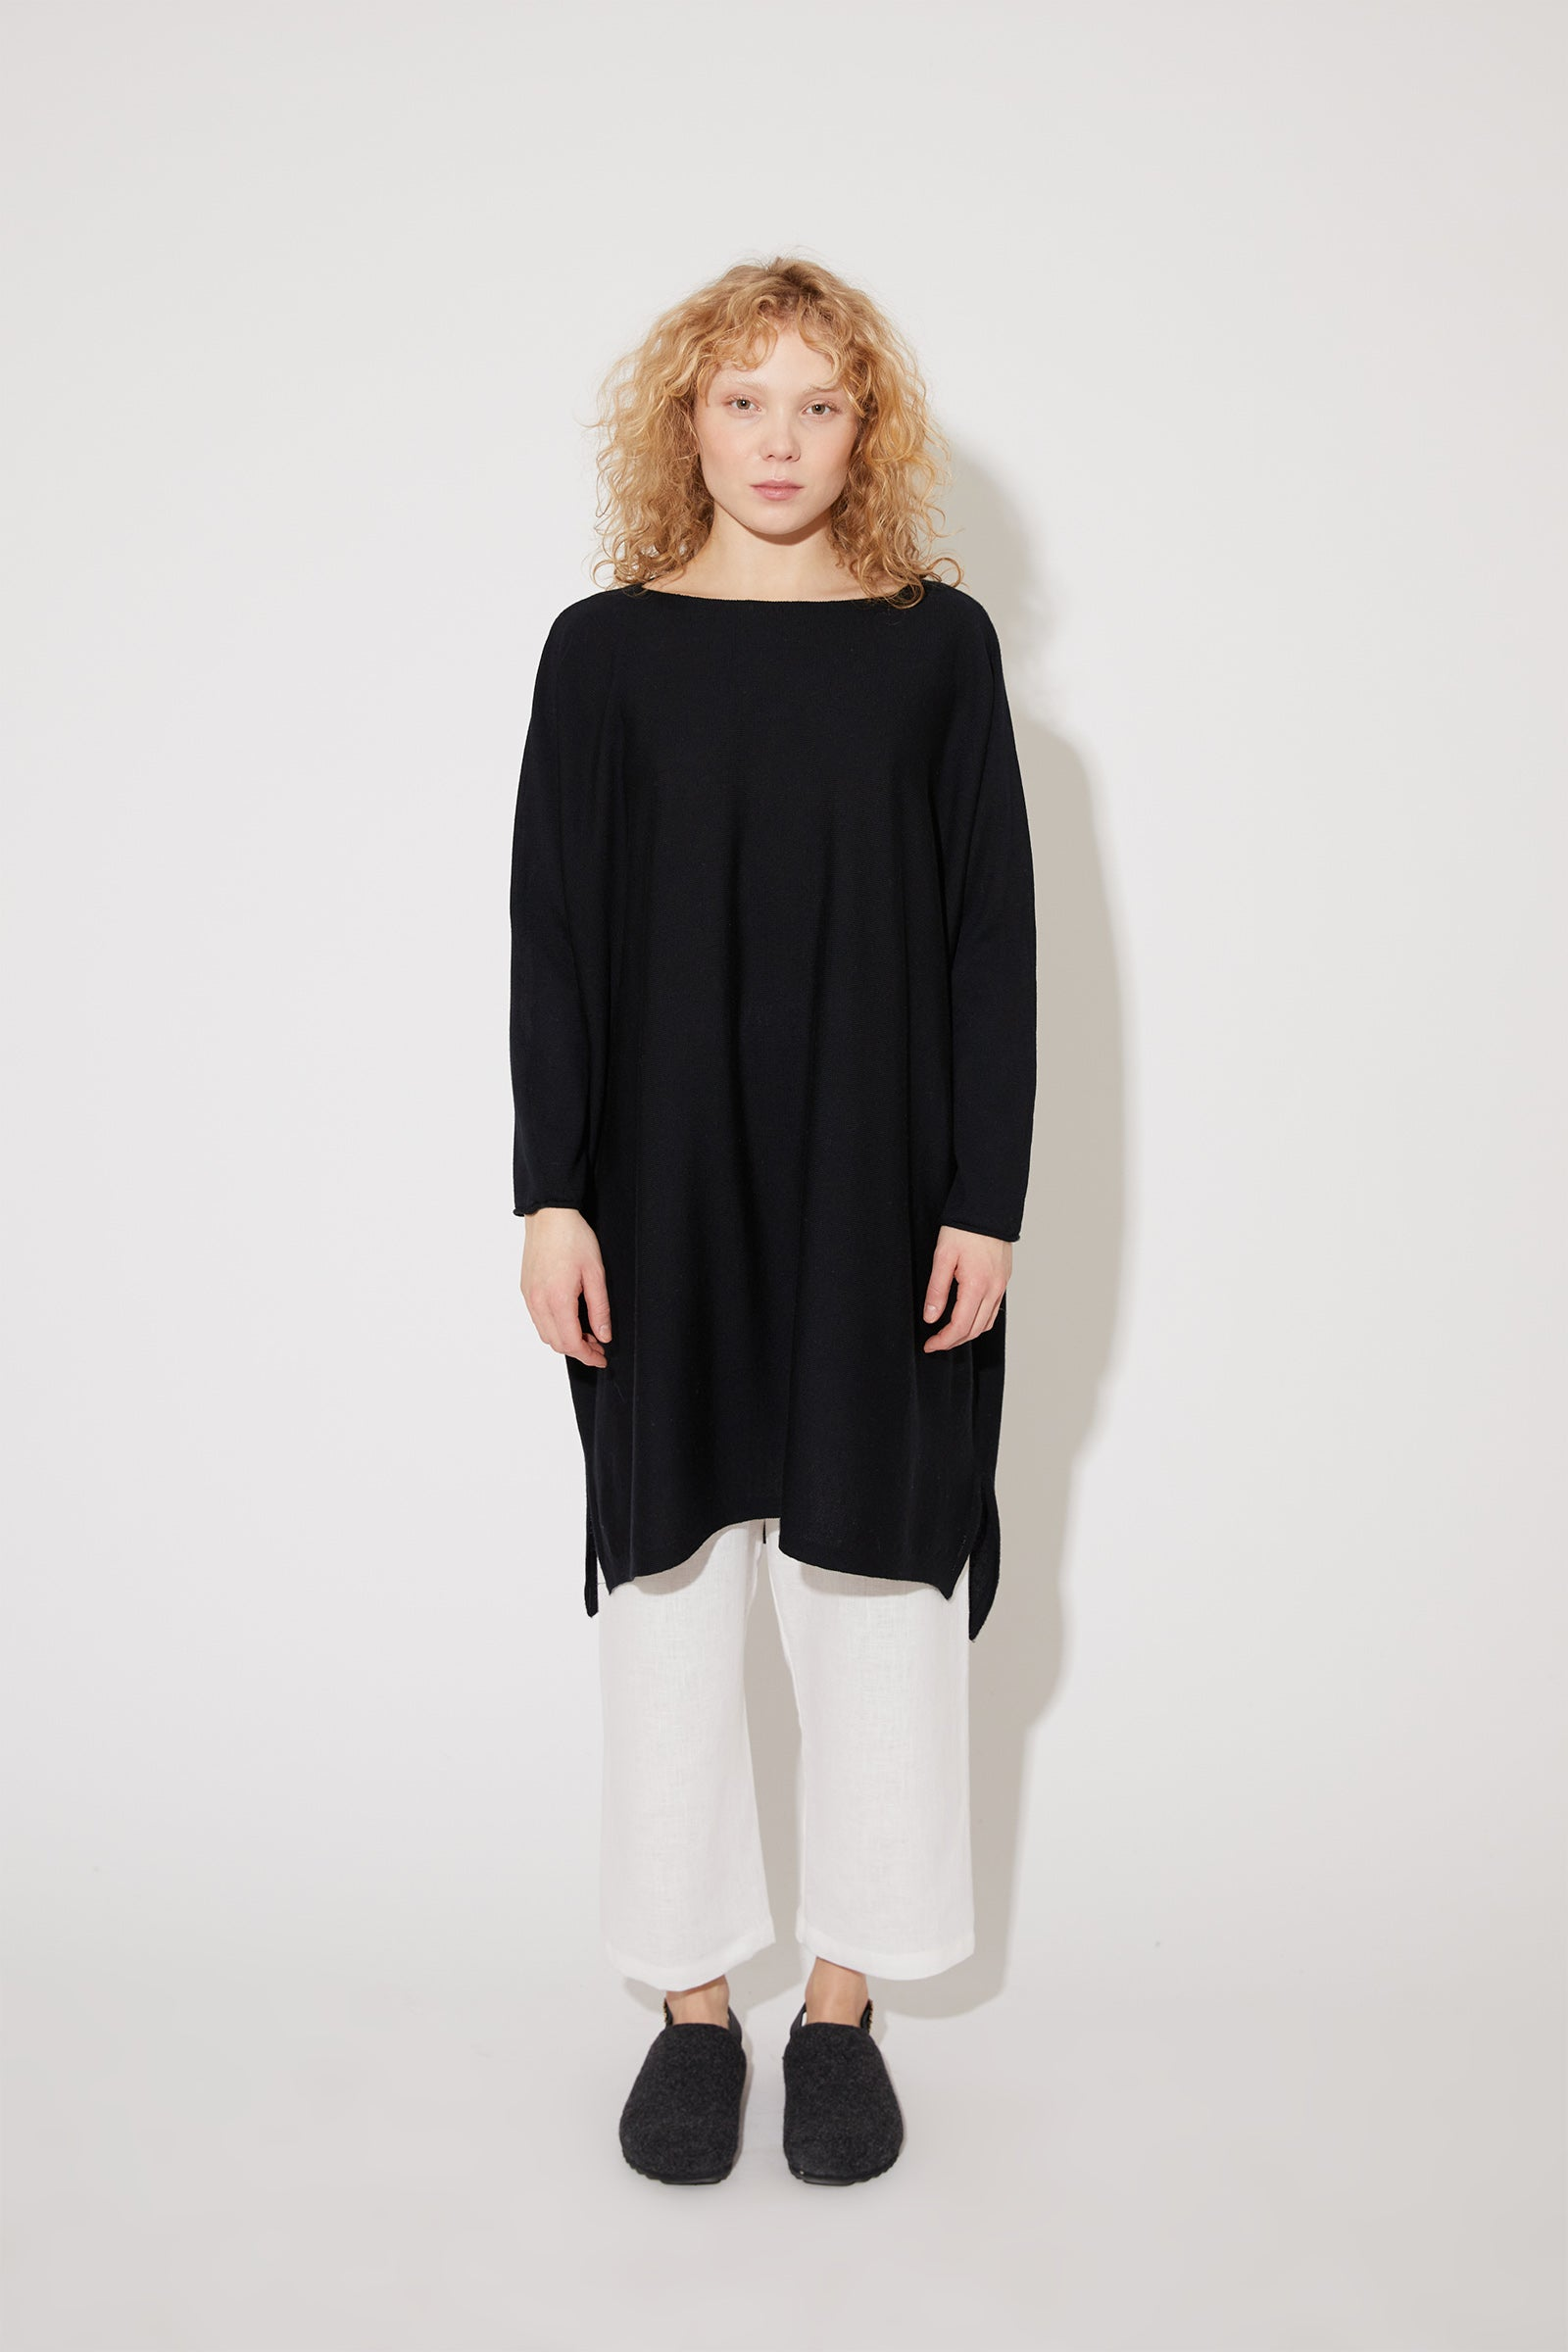 Eelia merino dress in black